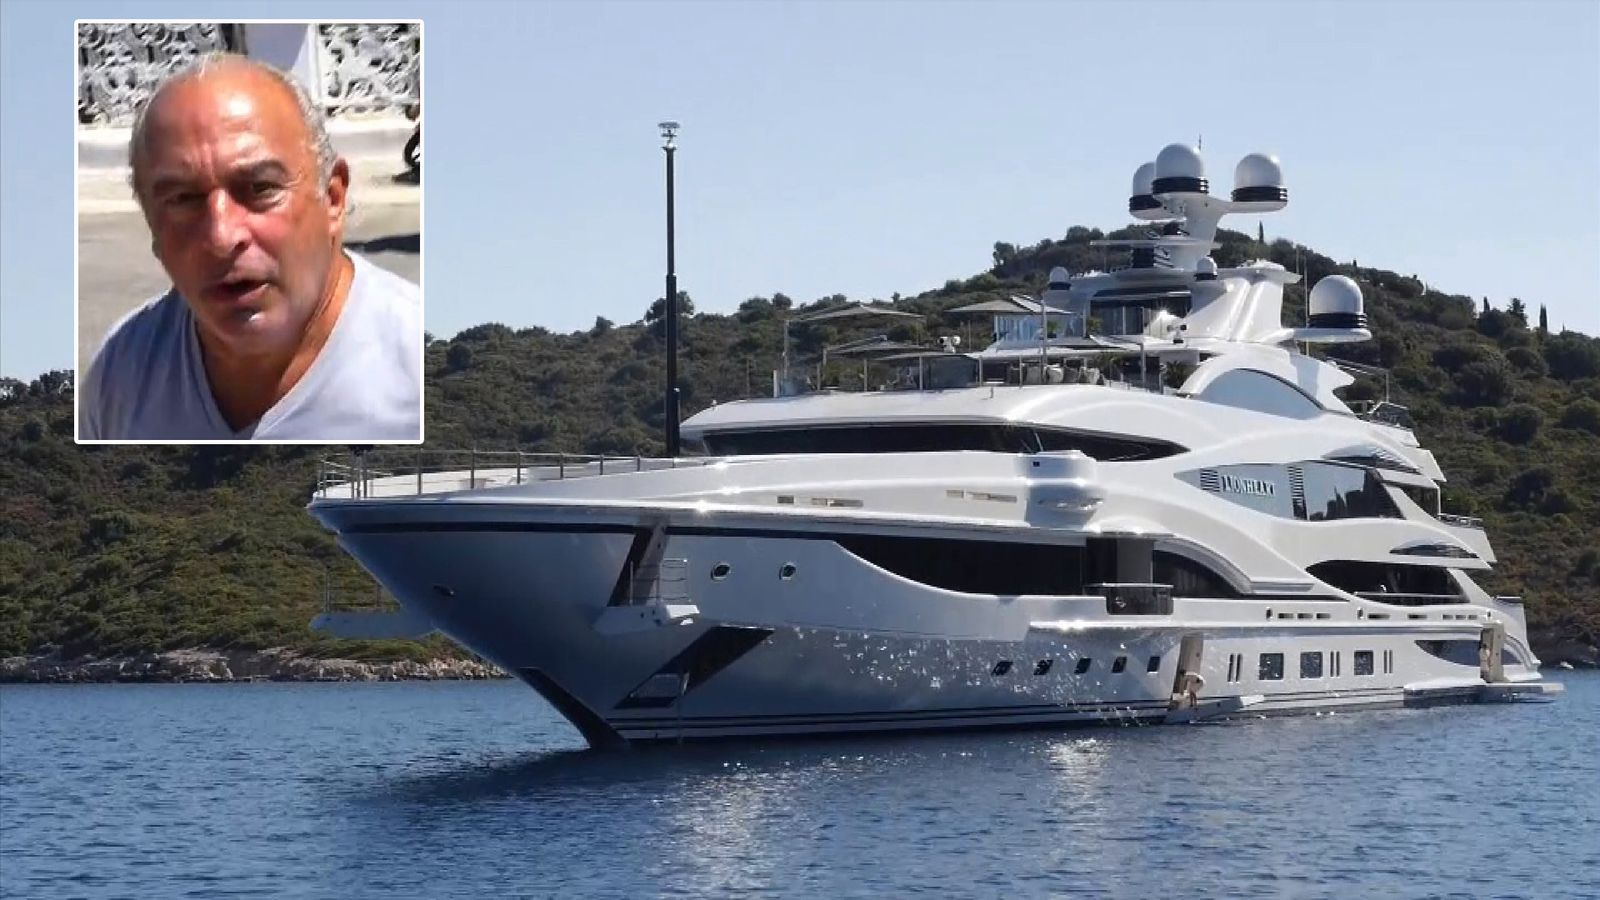 Philip Green has been holidaying on his Lionheart yacht in the Mediterranean